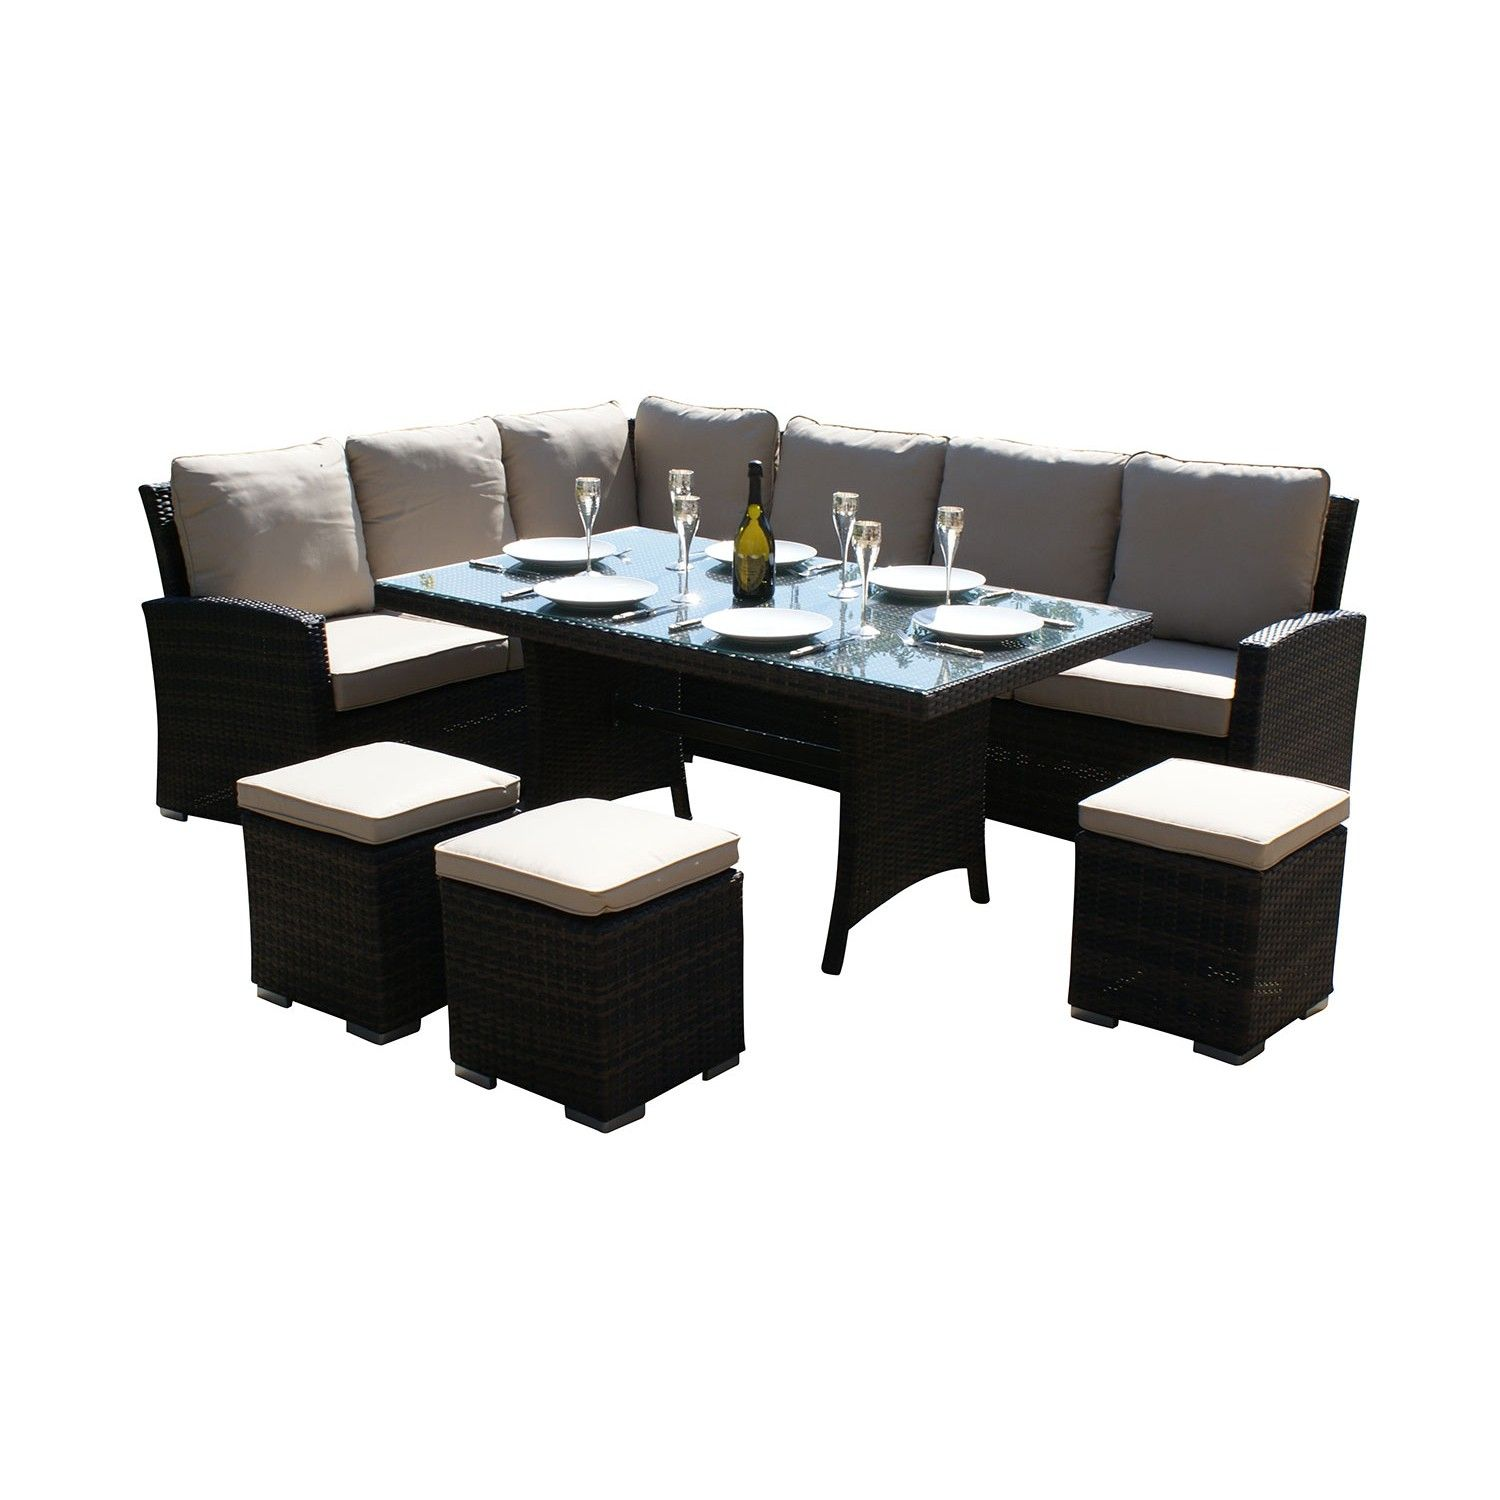 Maze Rattan Kingston Black Corner Sofa Garden Set The